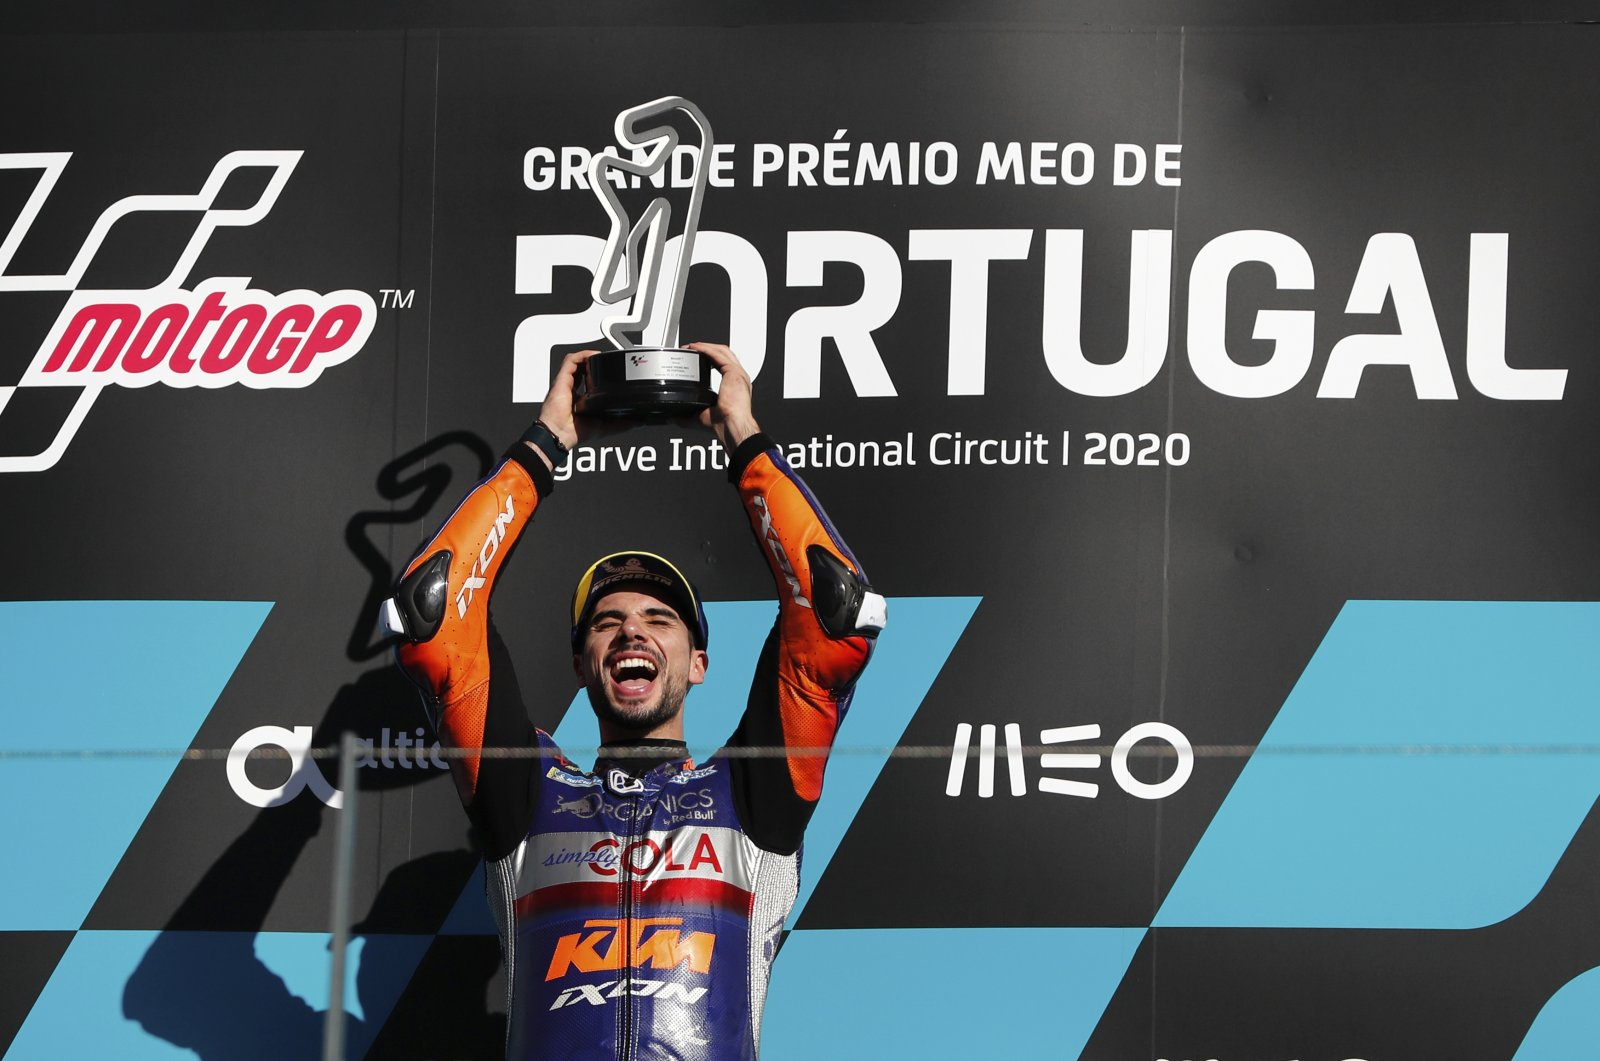 MotoGP rider Miguel Oliveira of Portugal celebrates on the podium after winning the MotoGP race of the Portuguese Motorcycle Grand Prix, the last race of the season, at the Algarve International Circuit near Portimao, Portugal, Nov. 22, 2020. (AP Photo)